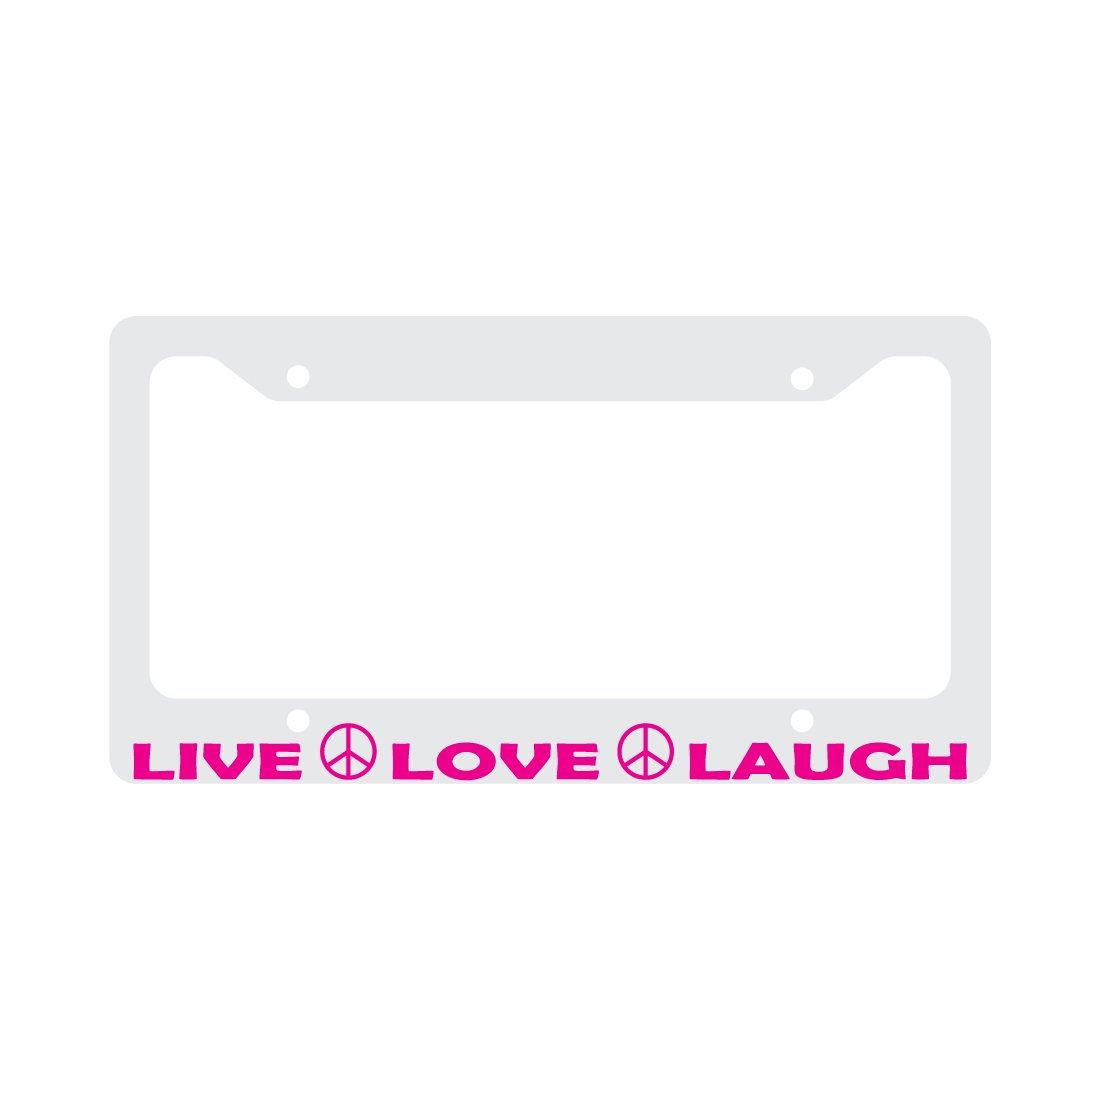 LIVE LOVE LAUGH Peace sign License Plate Frame